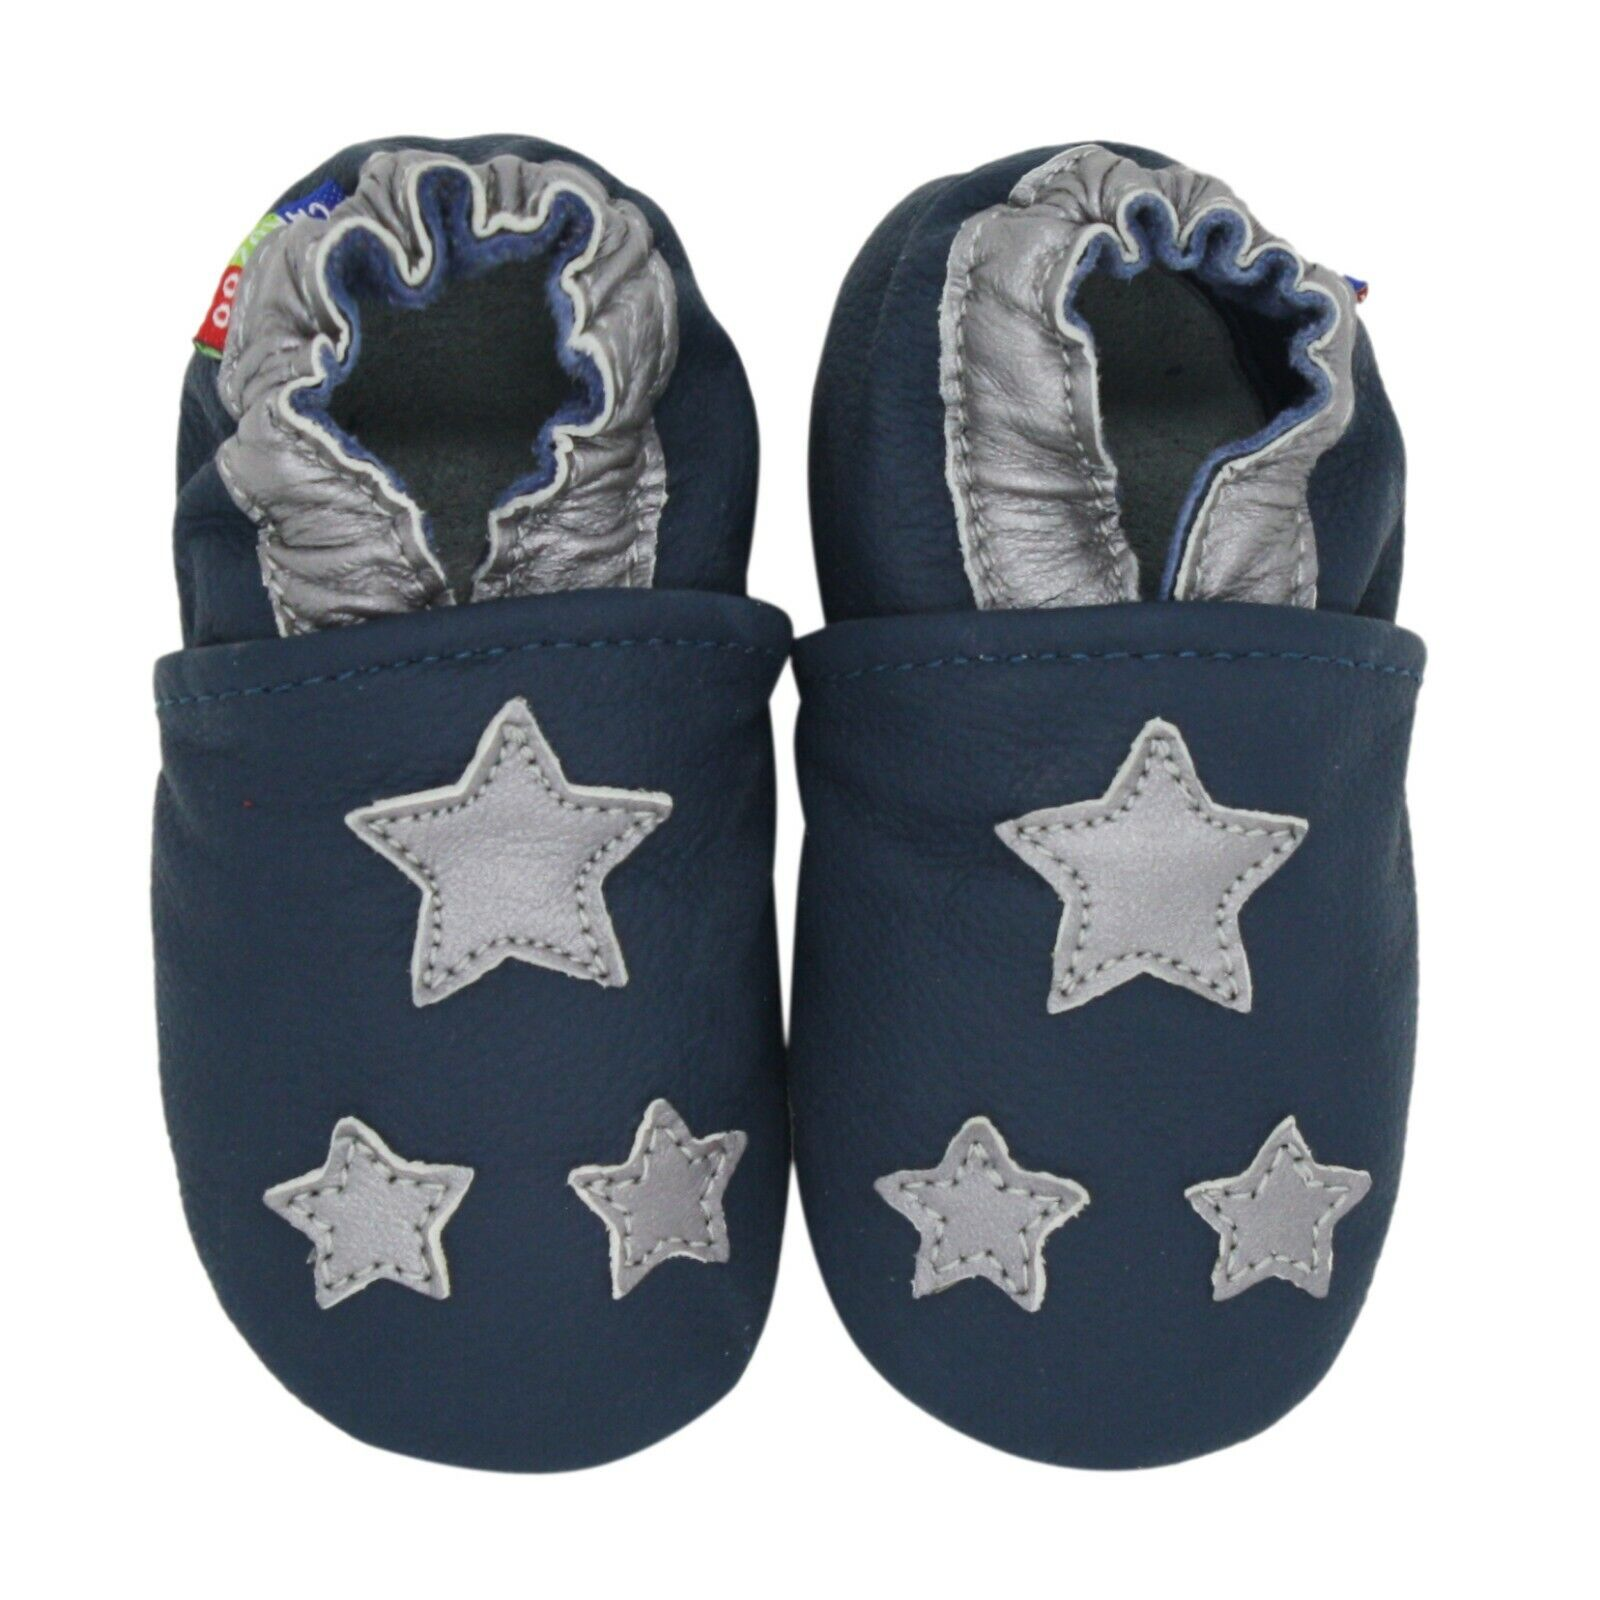 6-12m soft sole leather baby shoes